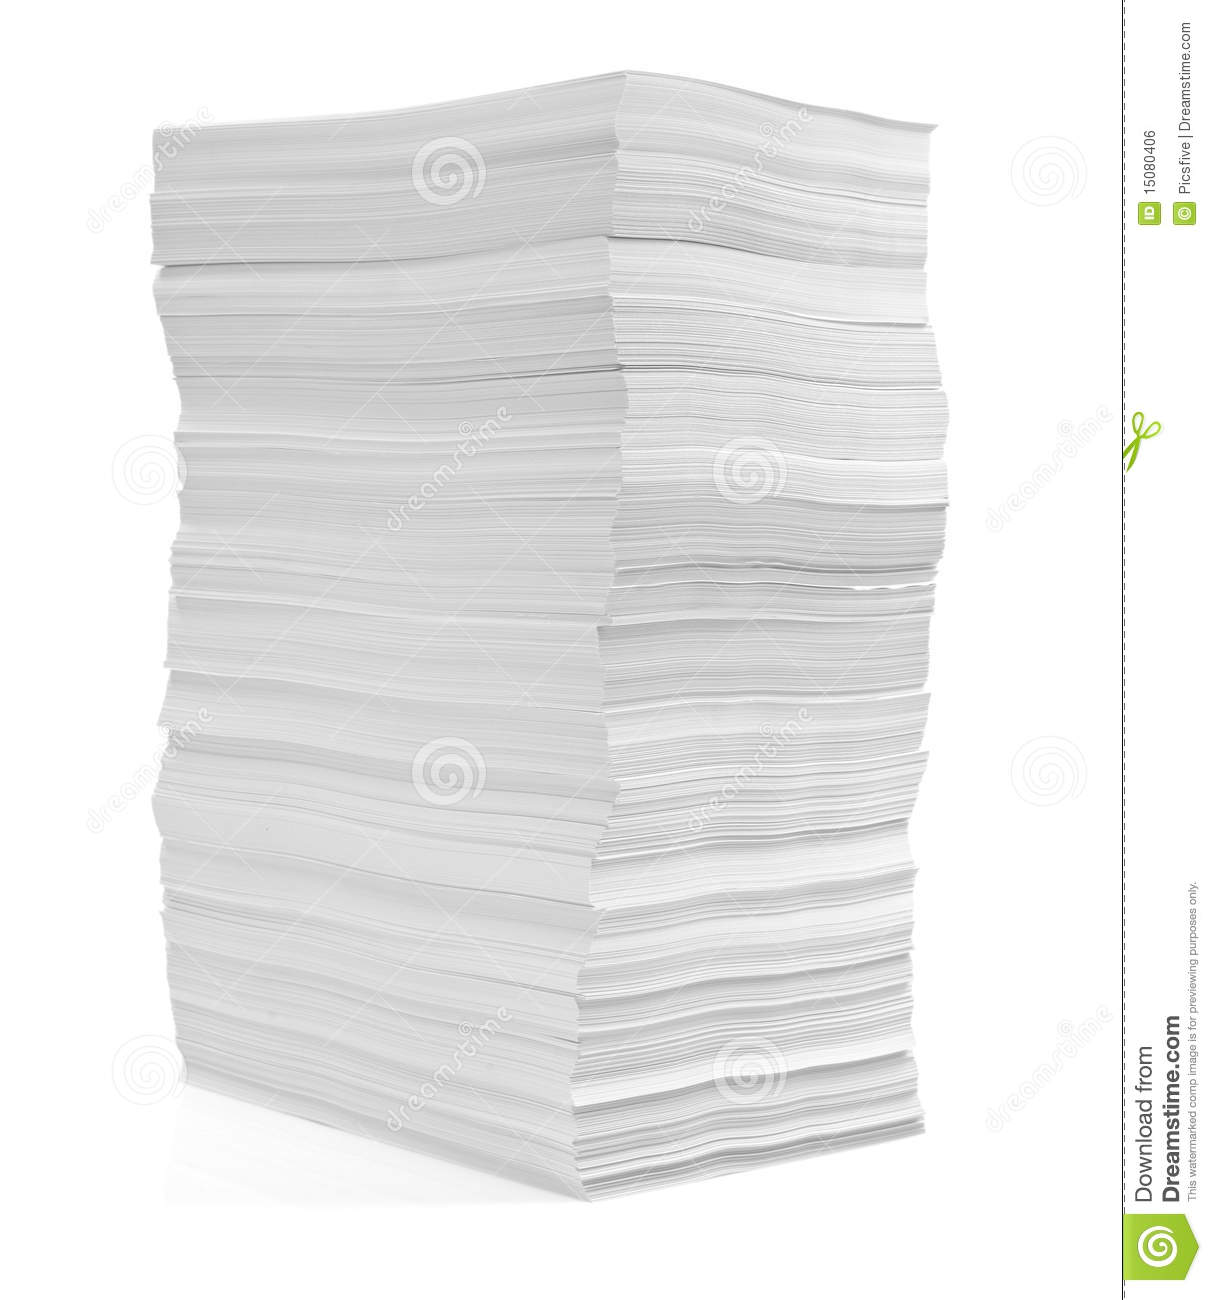 stack of papers documents office business royalty free